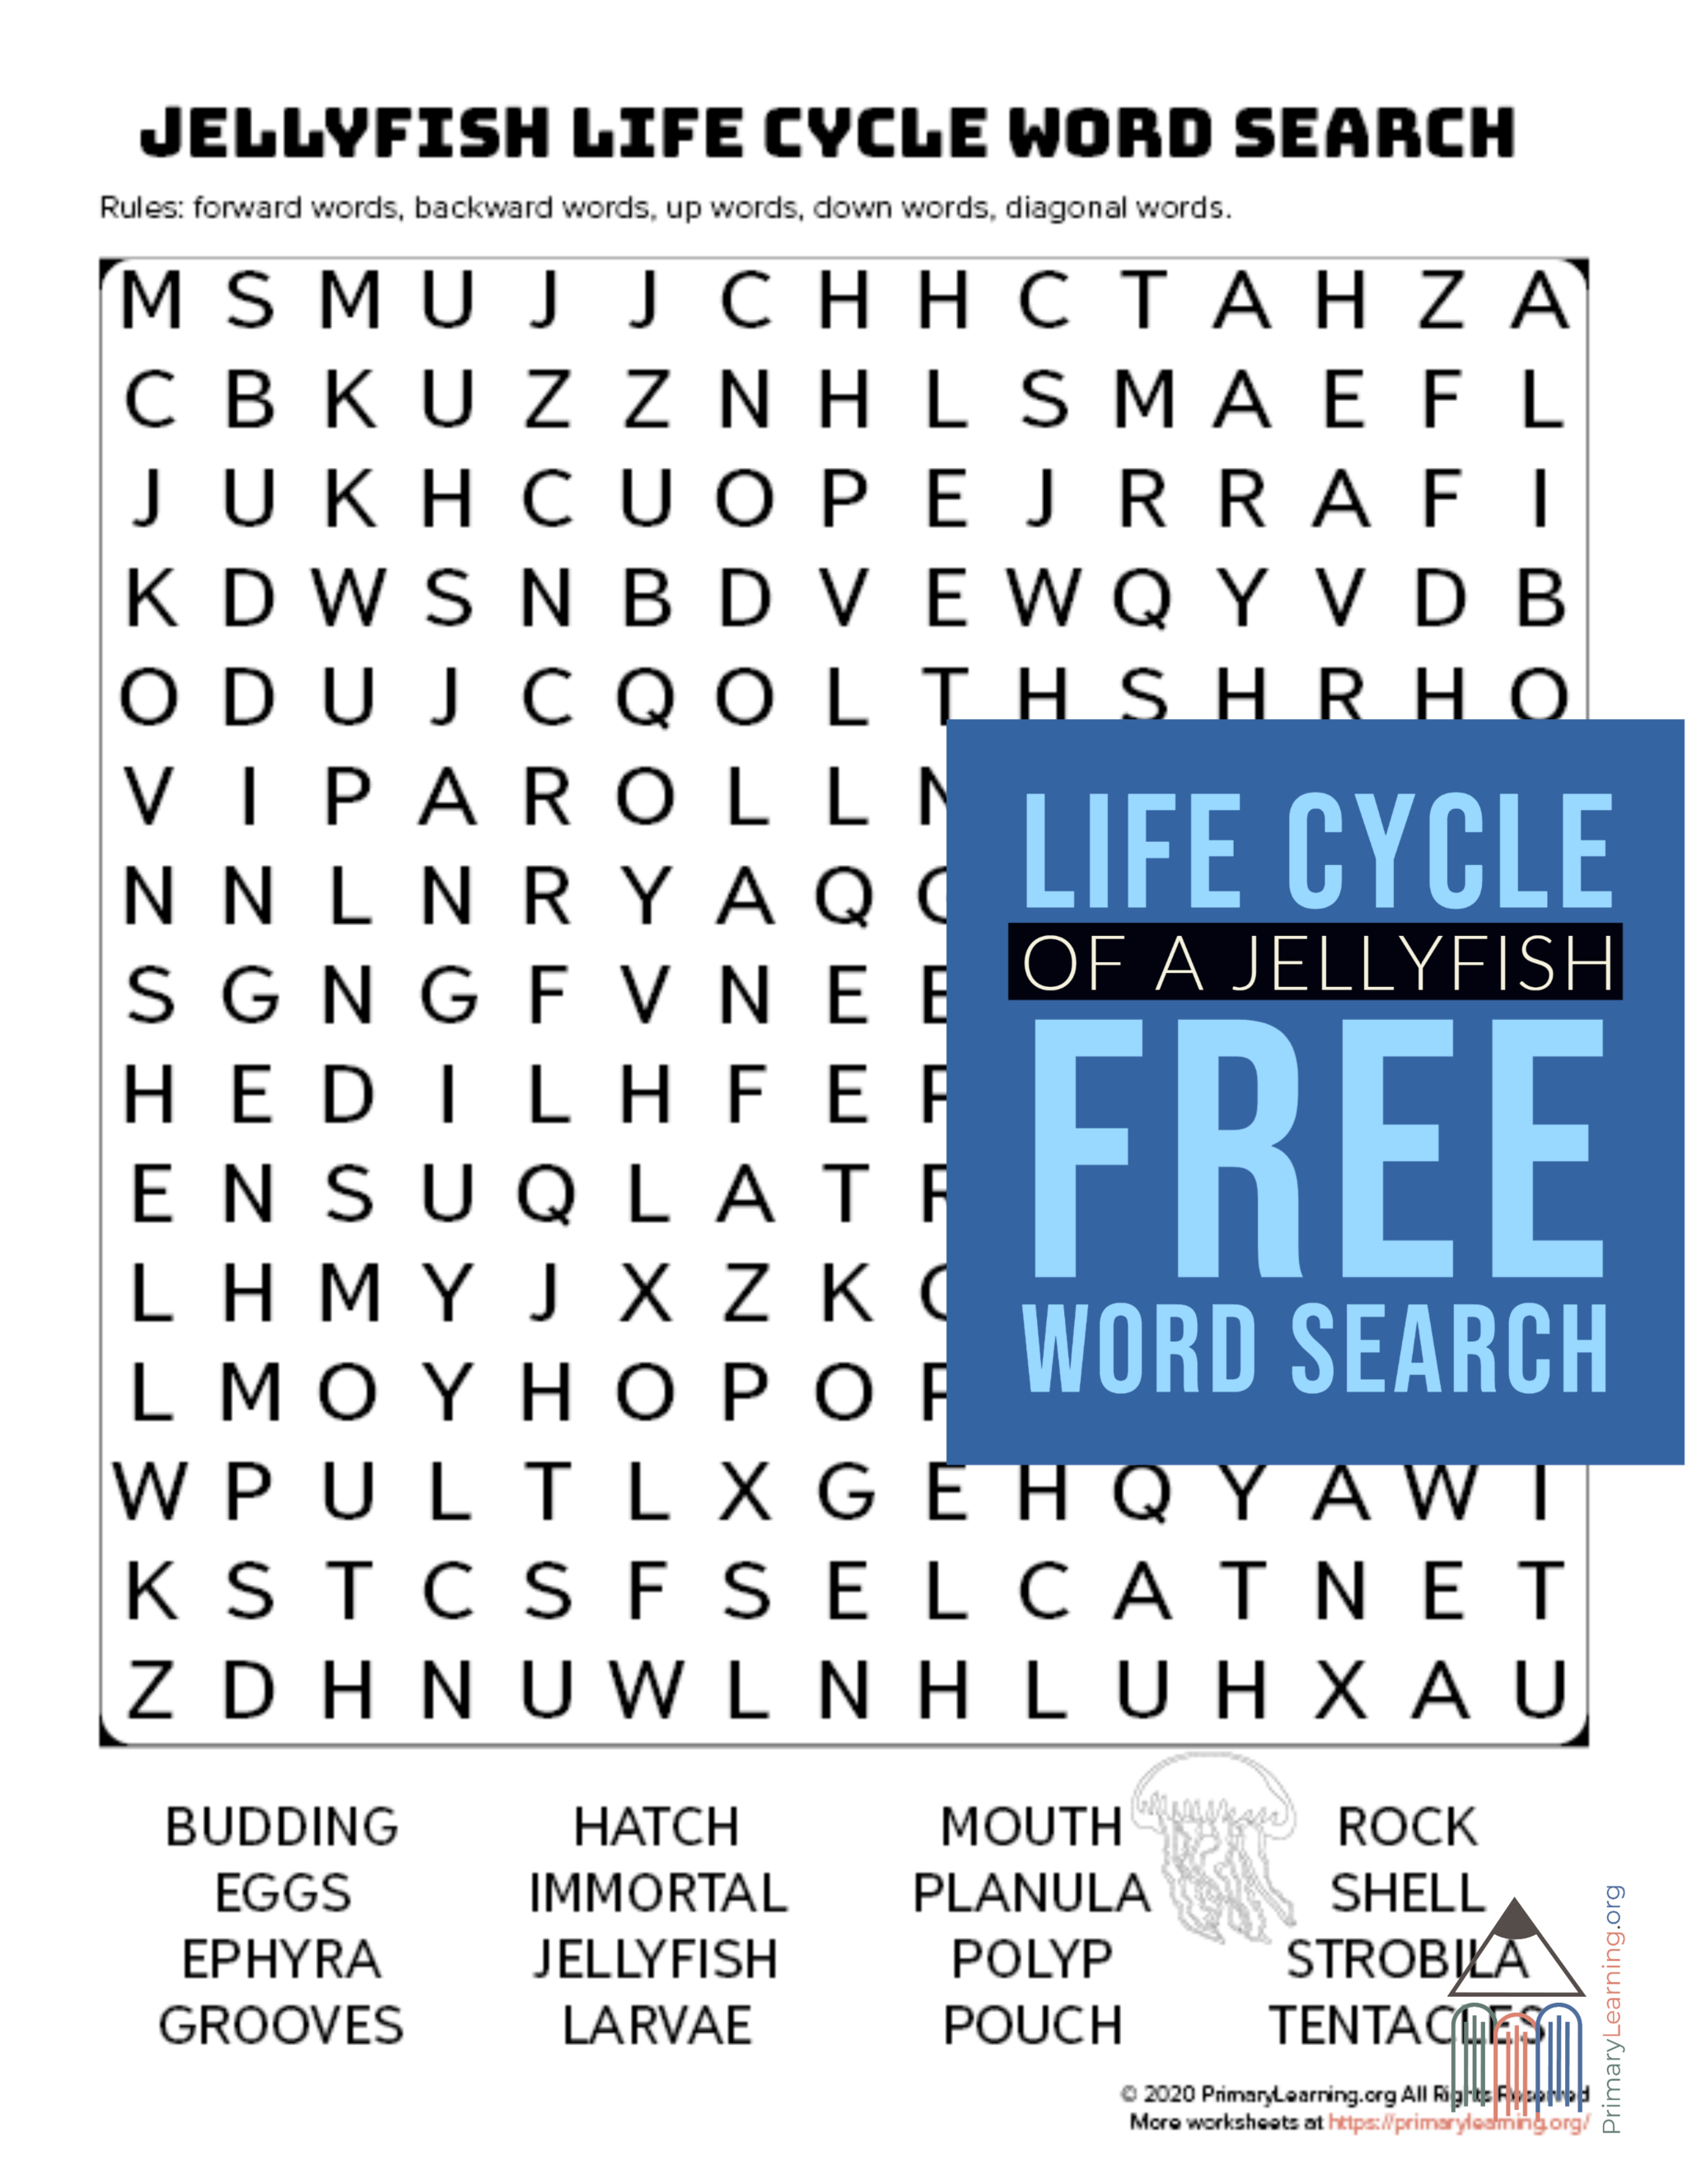 Jellyfish Life Cycle Word Search